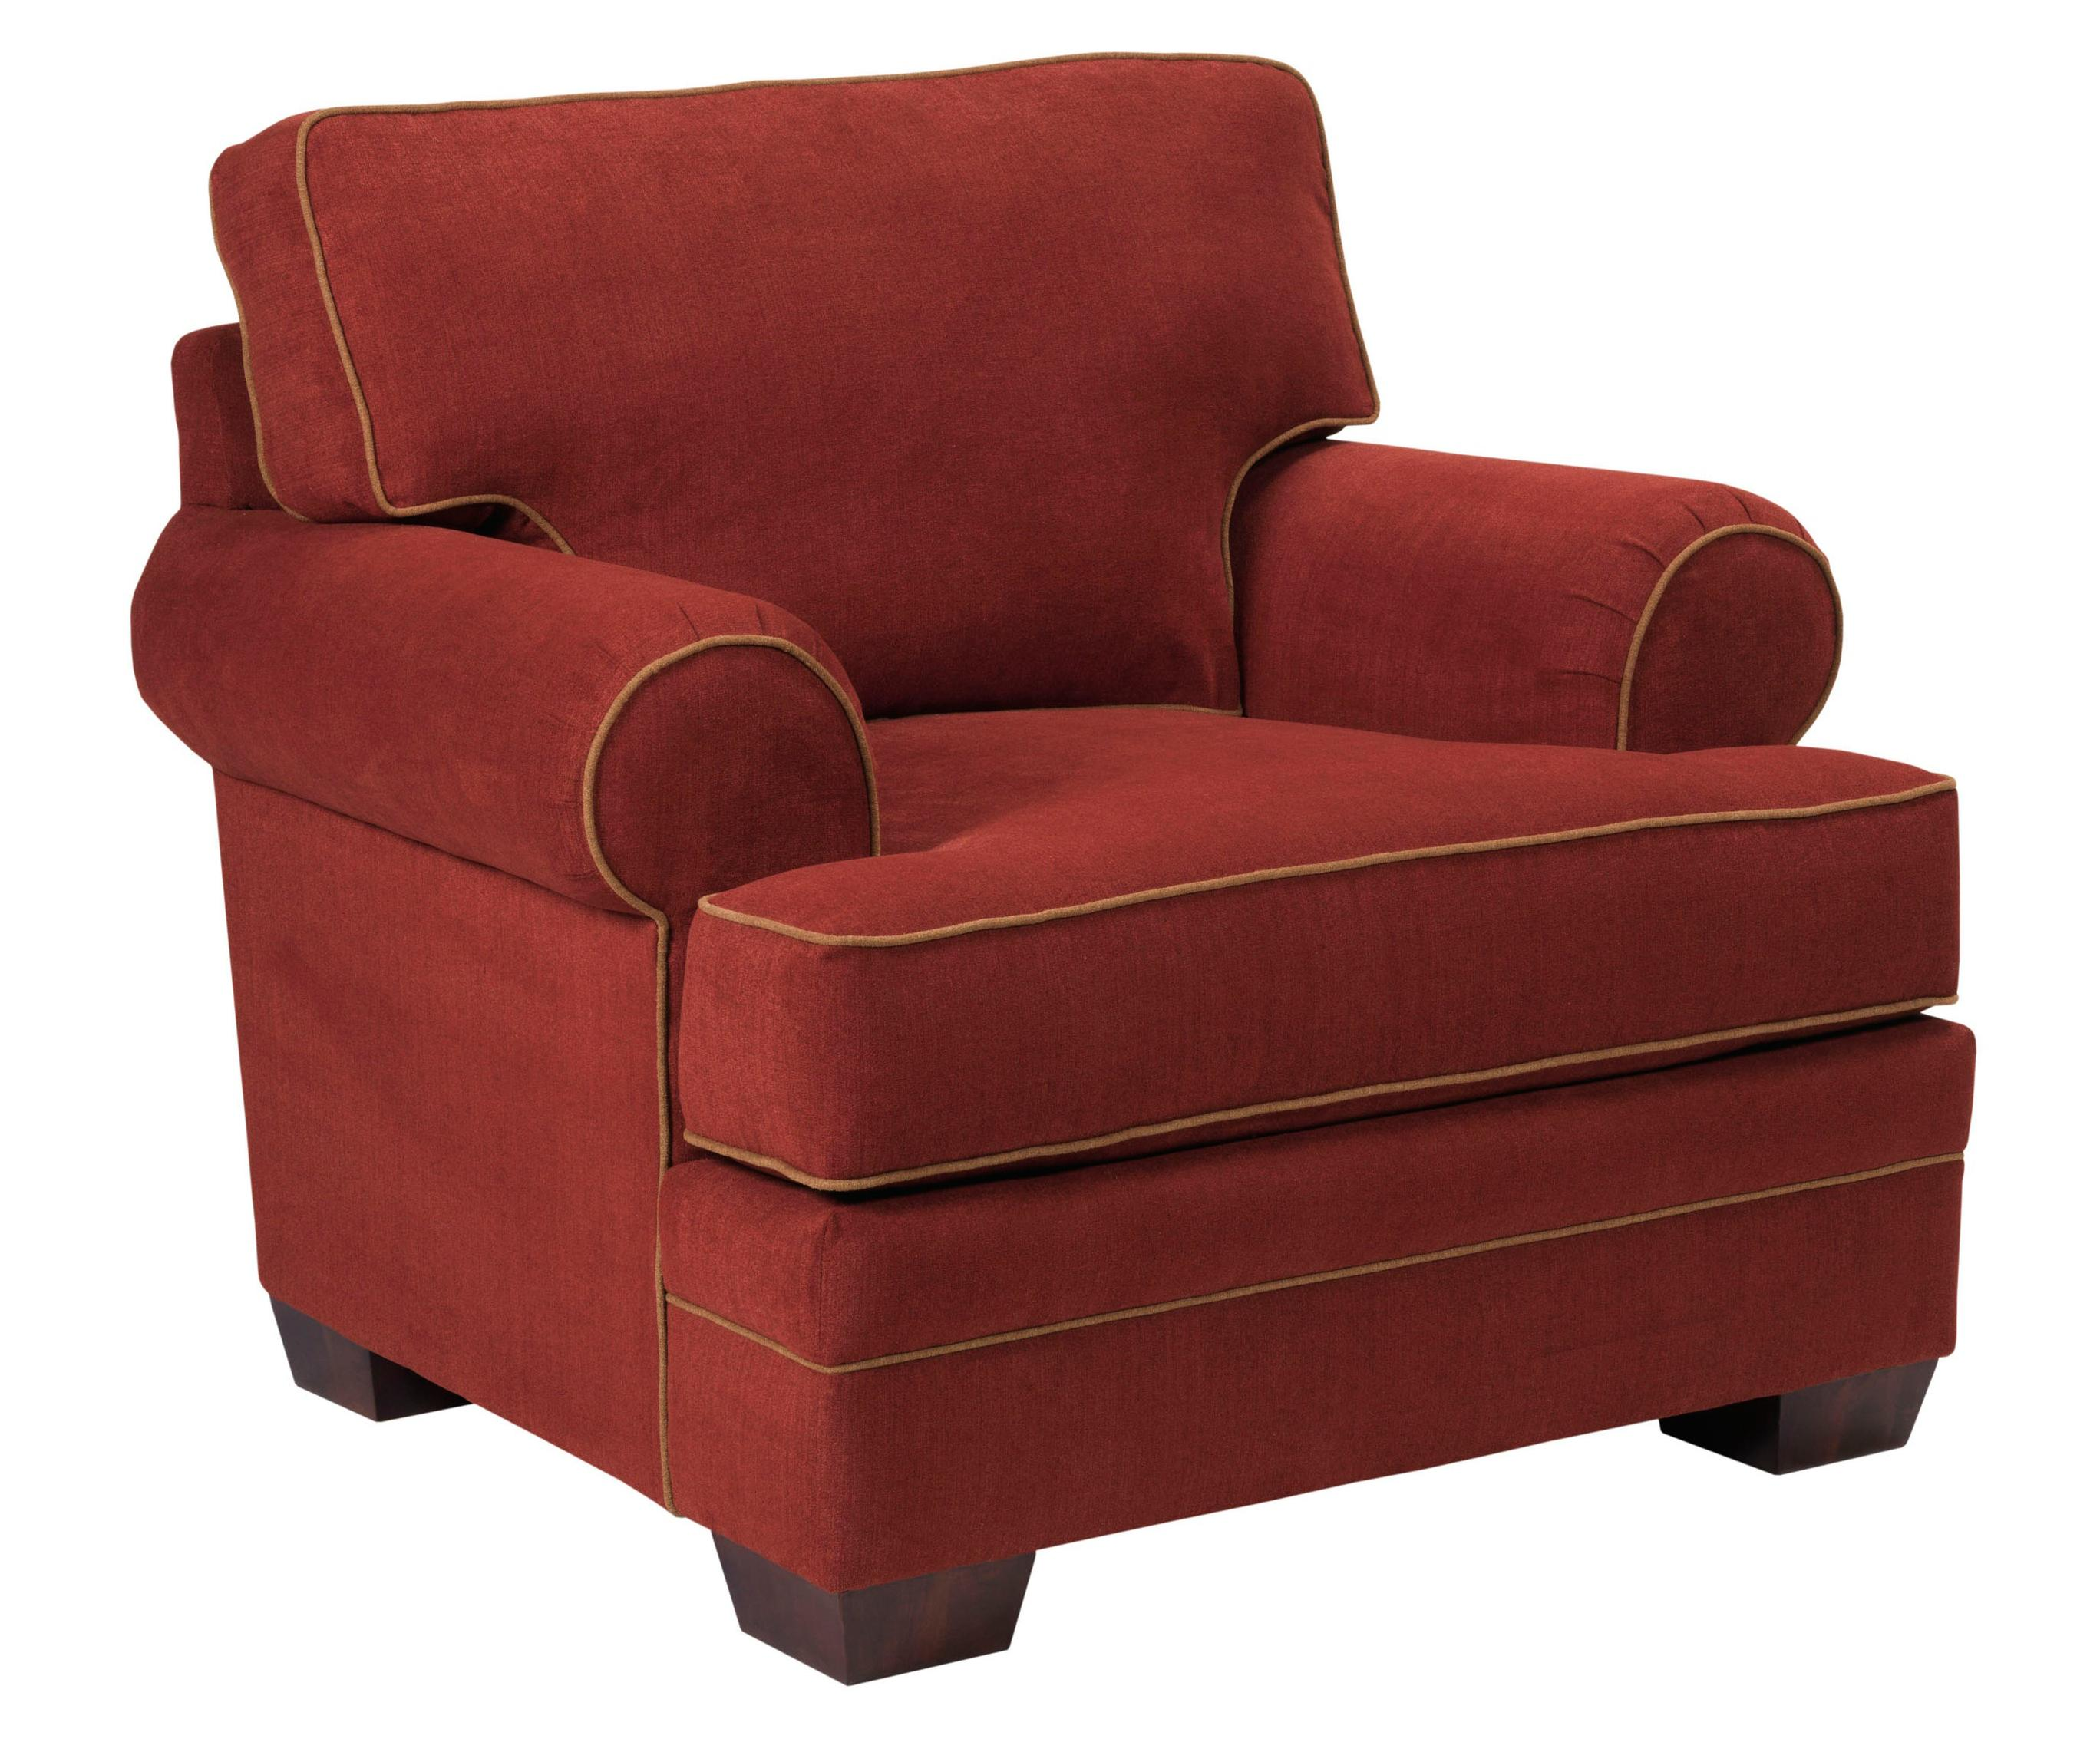 Landon Transitional Chair With Rolled Arms By Broyhill Express